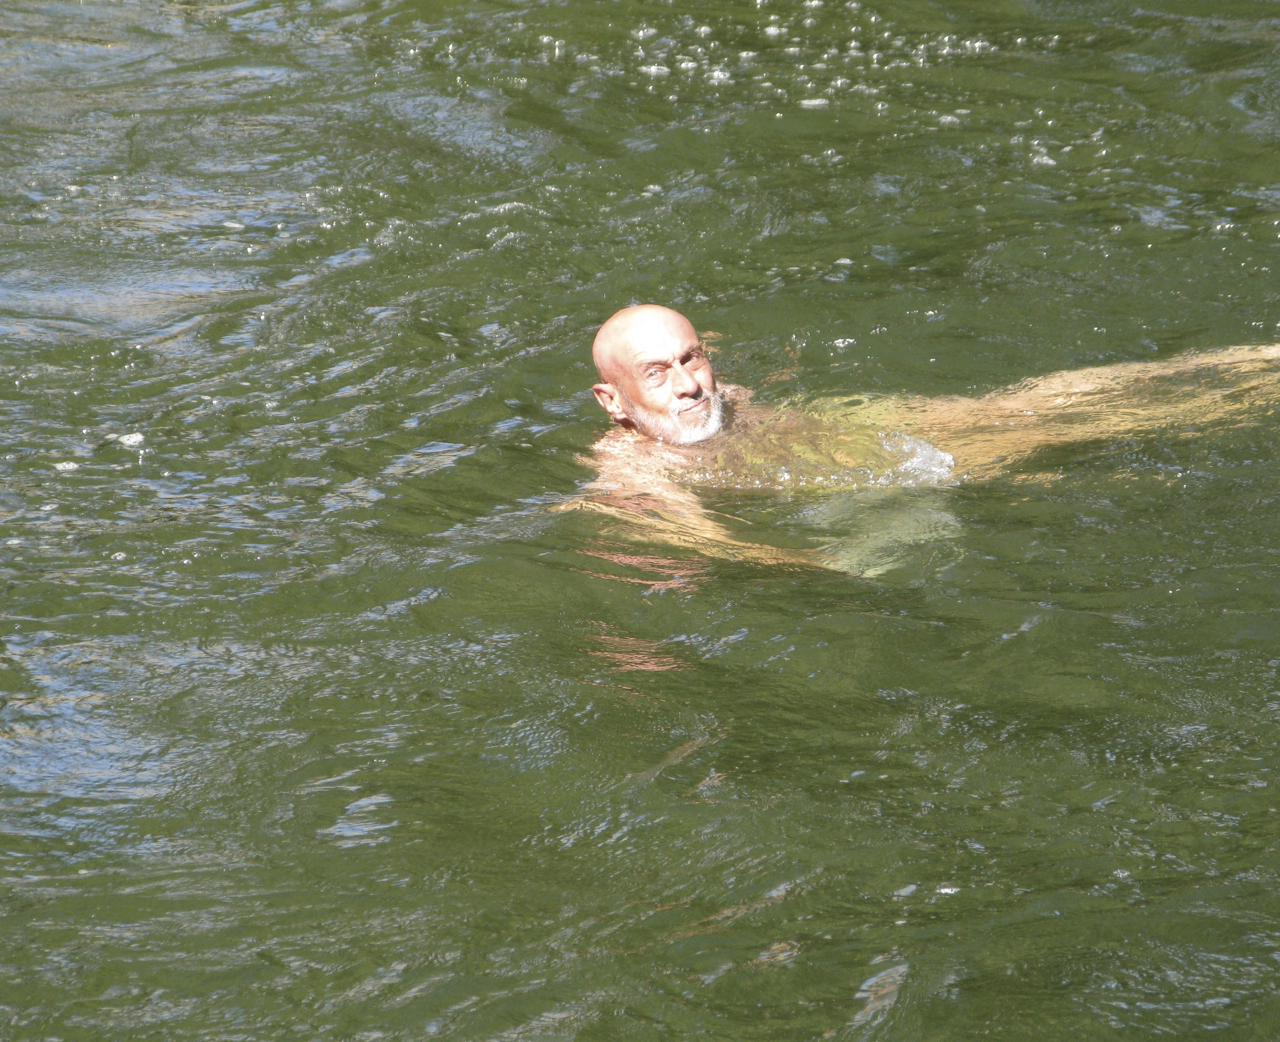 Richard swimming in the Arkansas River on his 60th birthday (after brain surgery one, a month before brain surgery two).